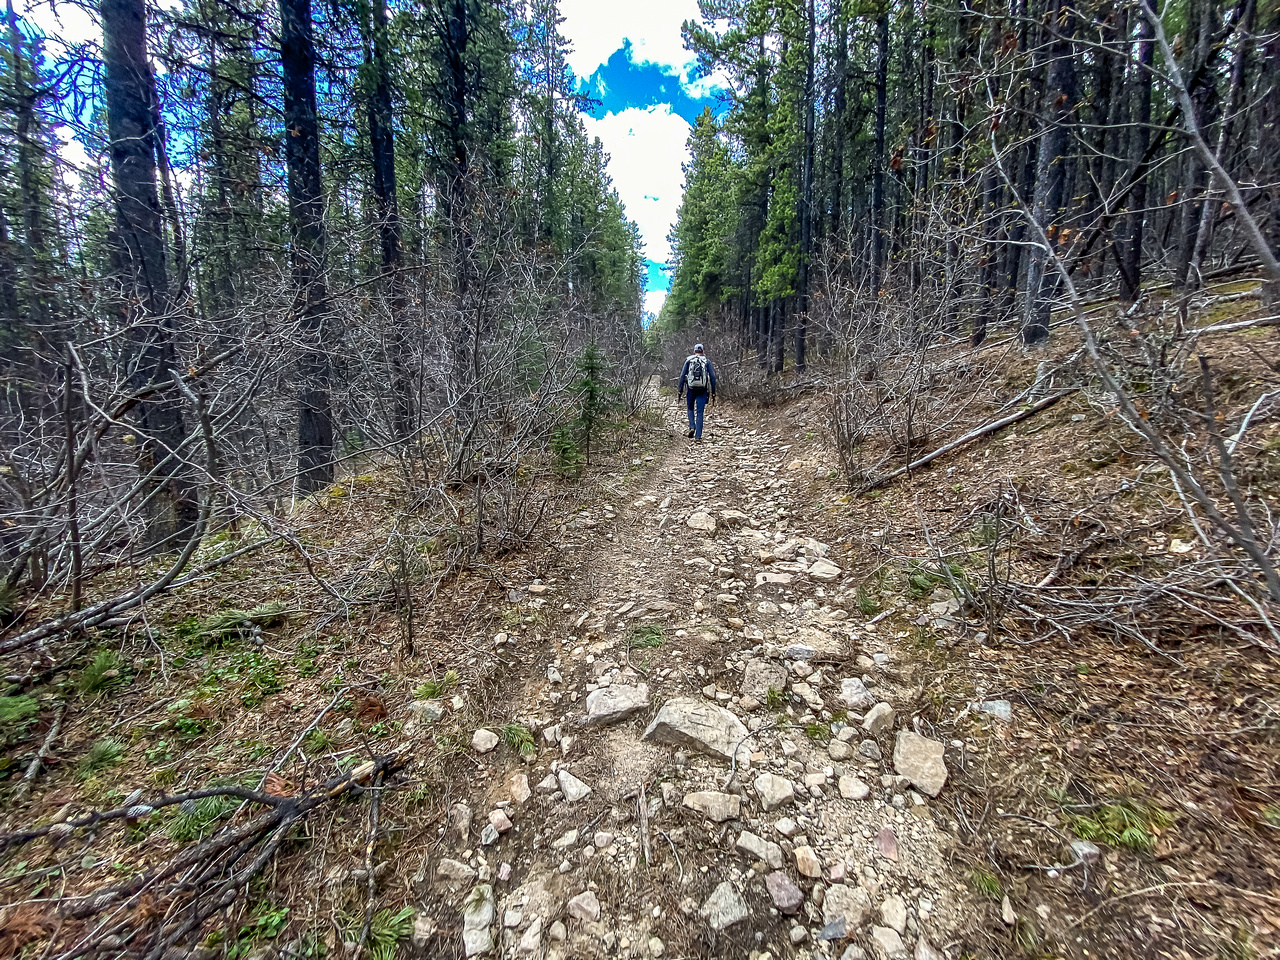 Hiking up the lower OHV track.